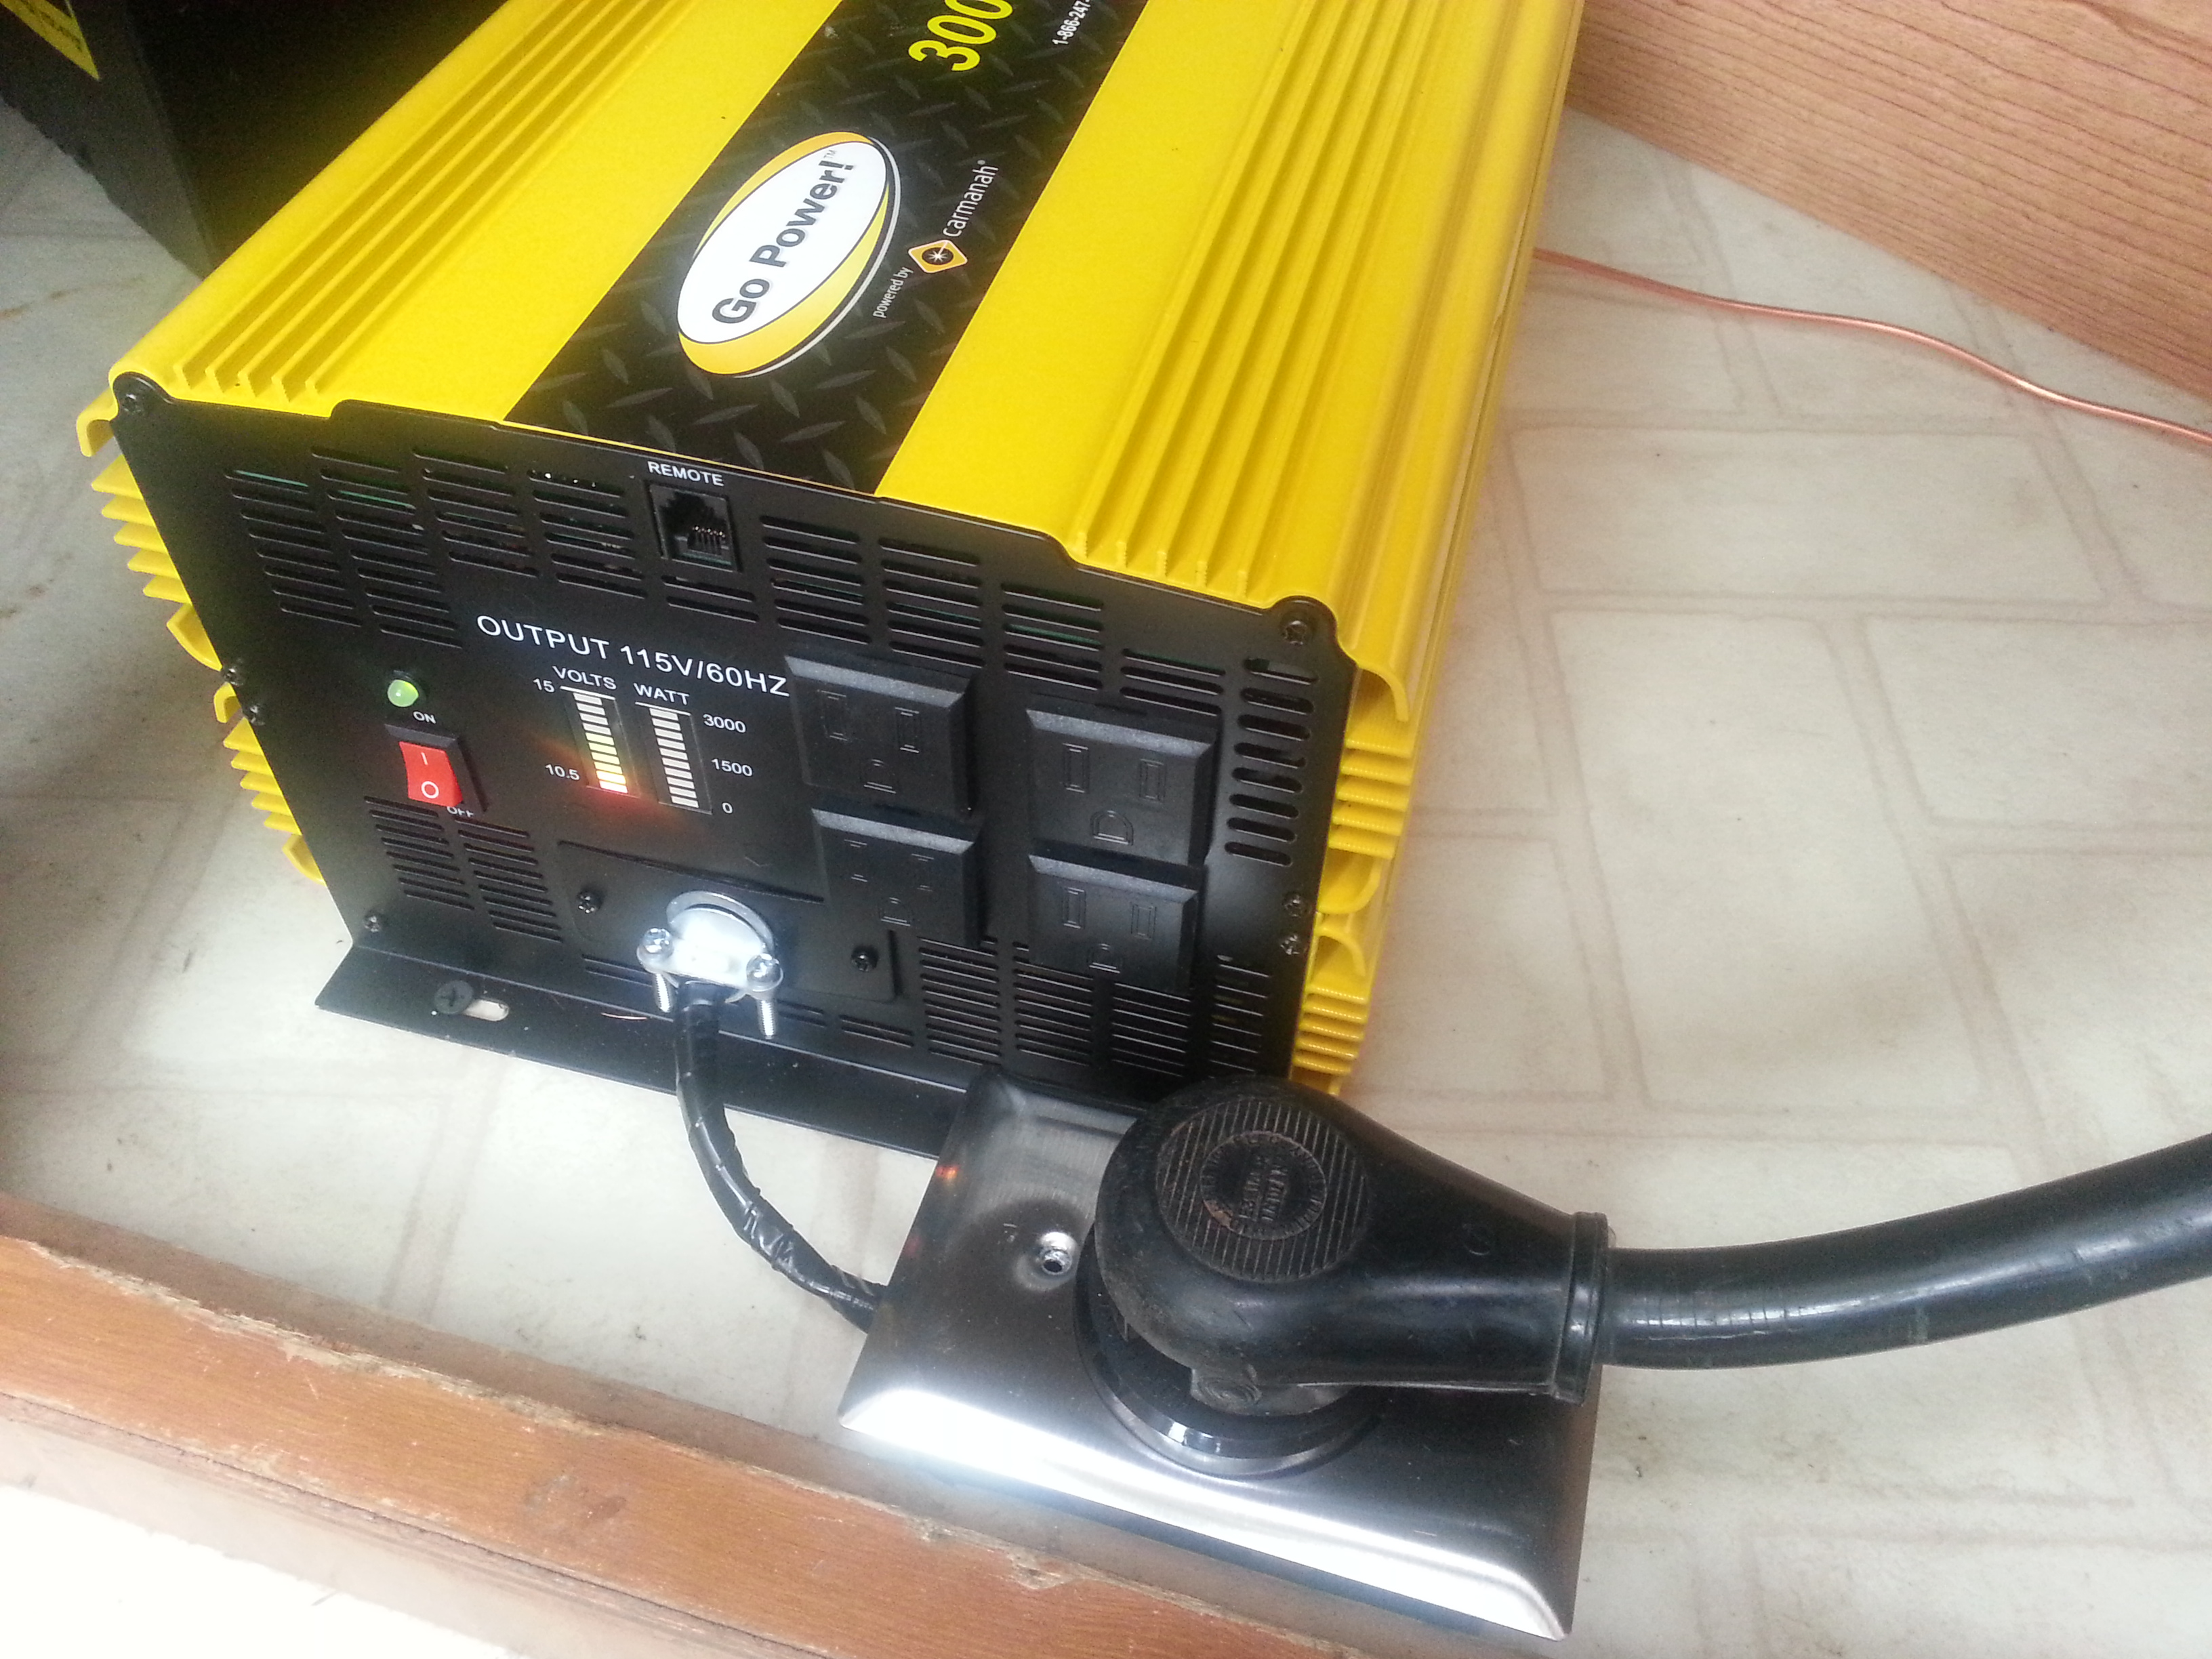 Adding Our 3000 Watt Go Power Inverter Sailing On Dry Land 30 Rv Outlet Wiring To Breaker Box Dc Amp Meter Diagram One Advantage Of Setting Up Added In This Way Is That No Wires Or Connections Are The Smaller Ac 10 Gauge Hot And Even